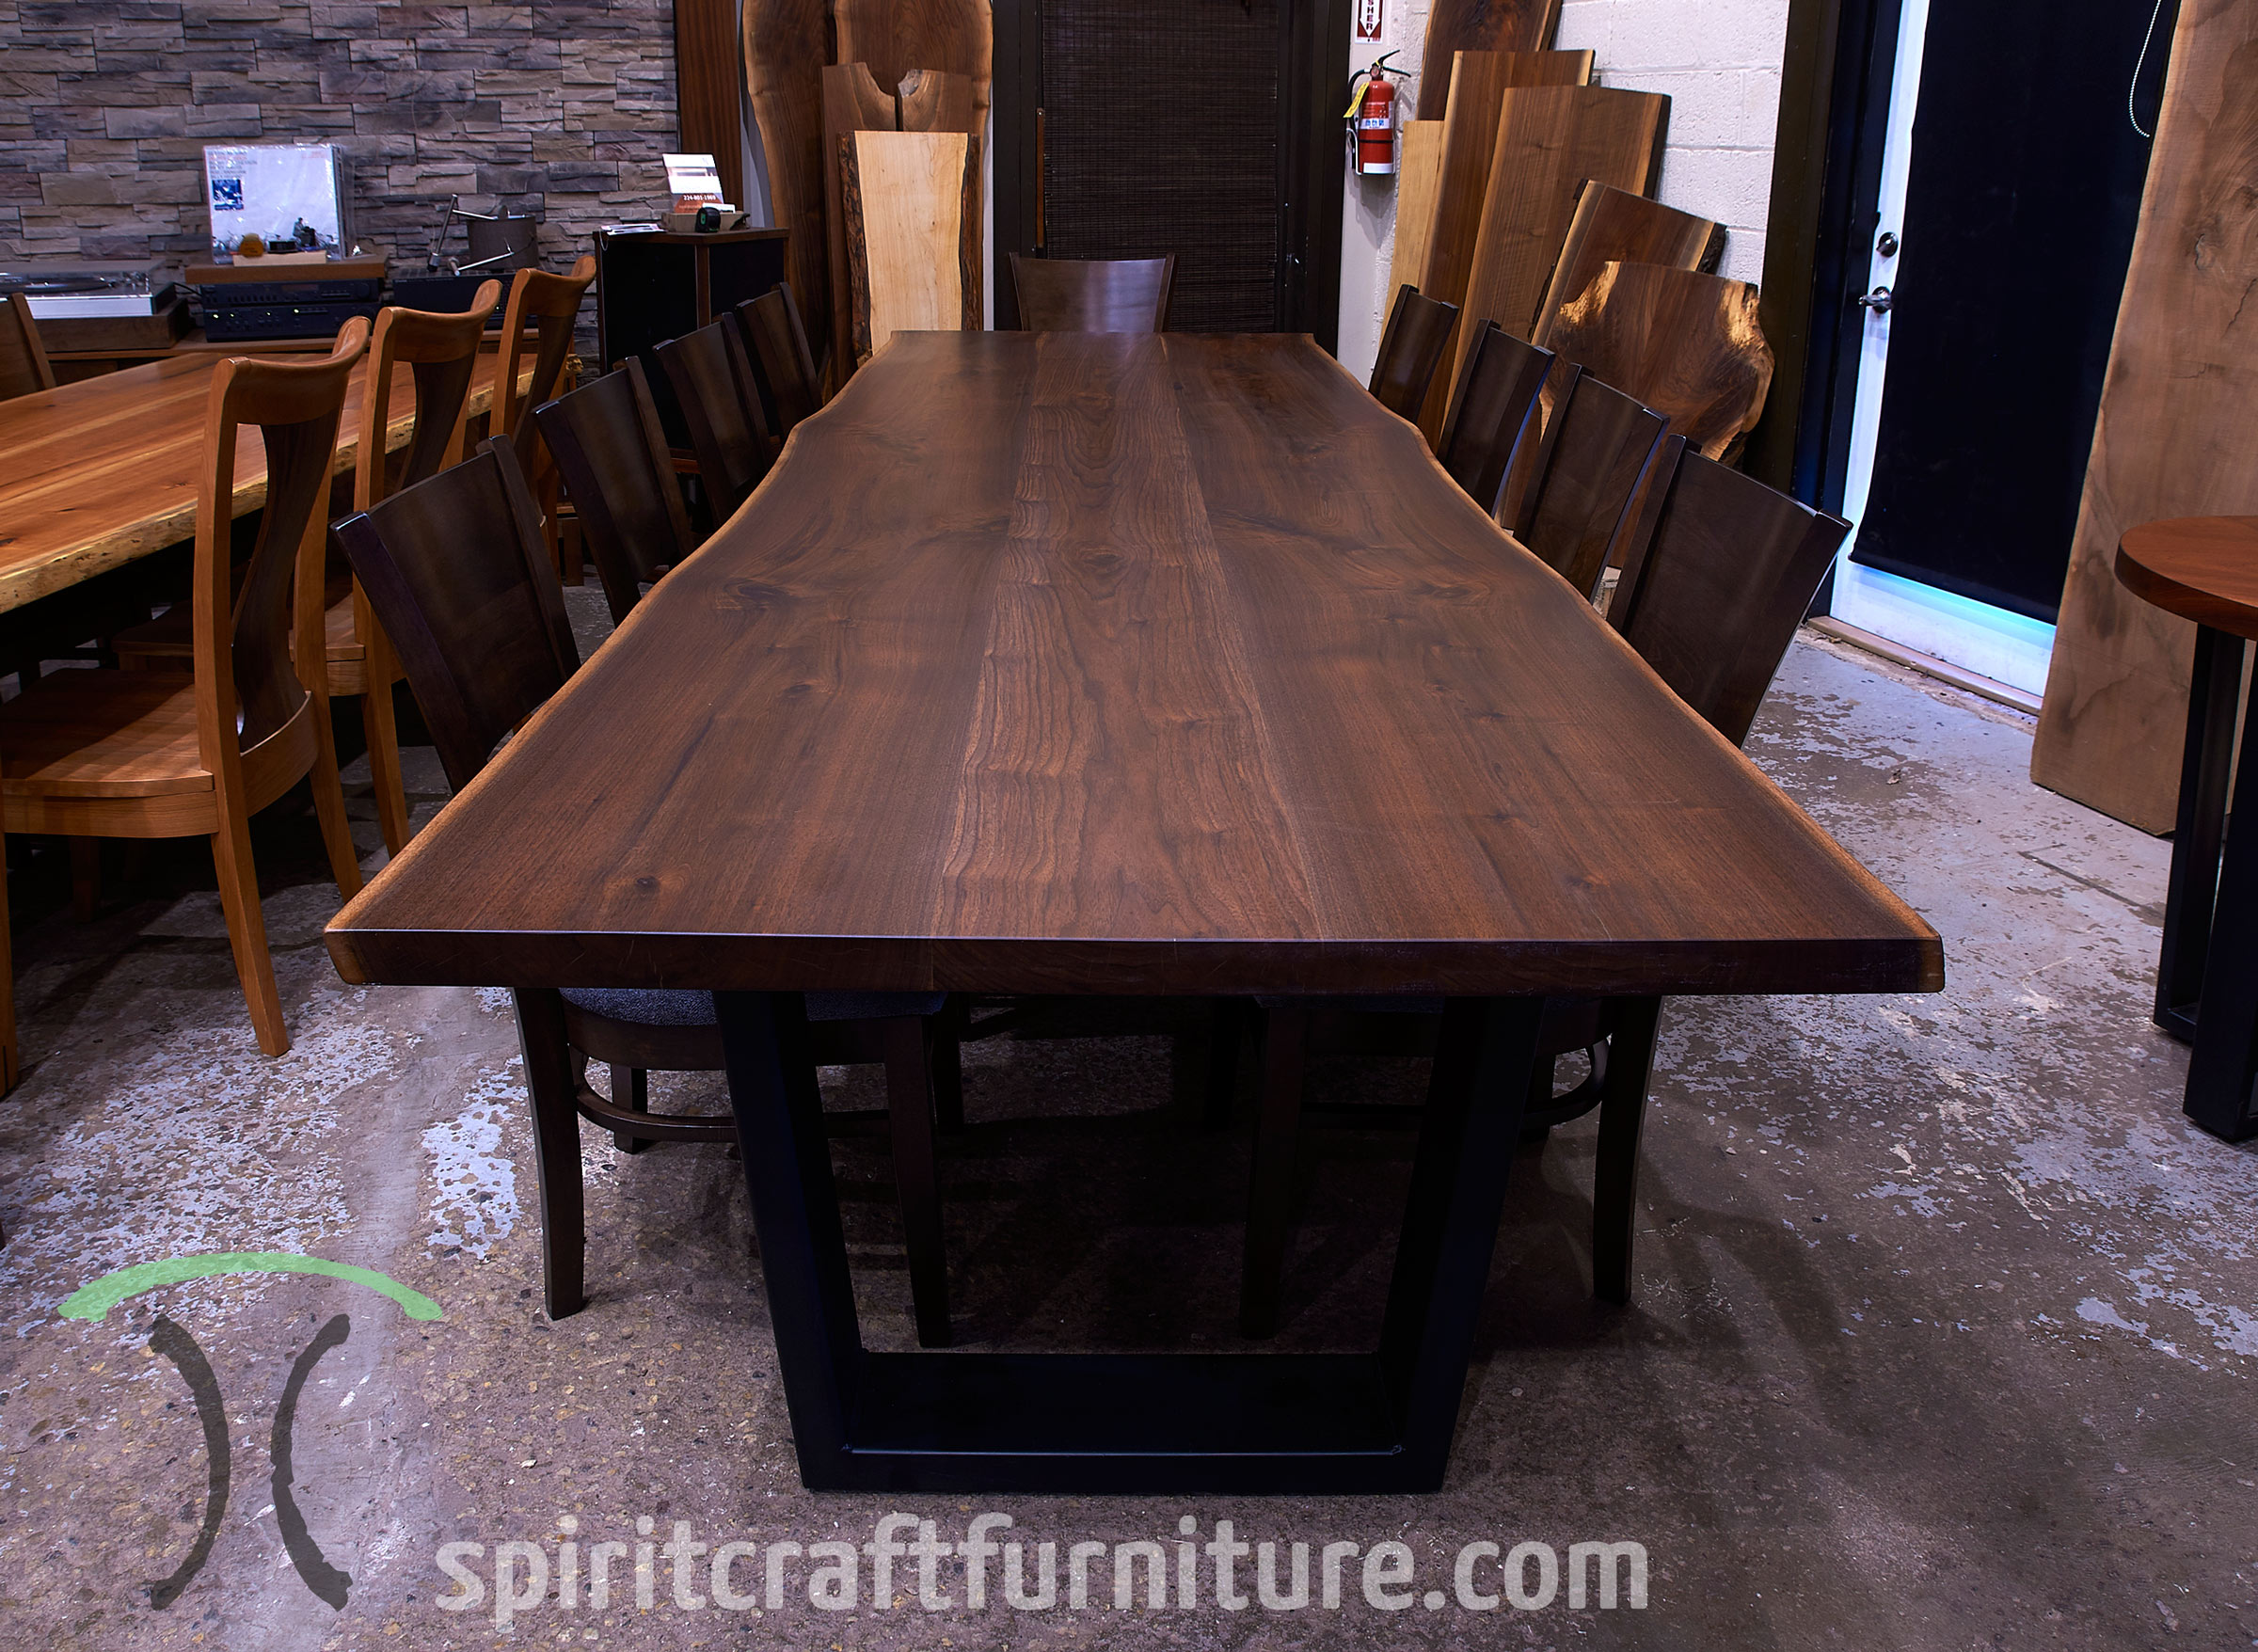 Black Walnut Live Edge conference room table for New York corporate boardroom with RH Yoder Somerset Chairs from Chicago area custom woodshop Spiritcraft Furniture of East Dundee, IL.